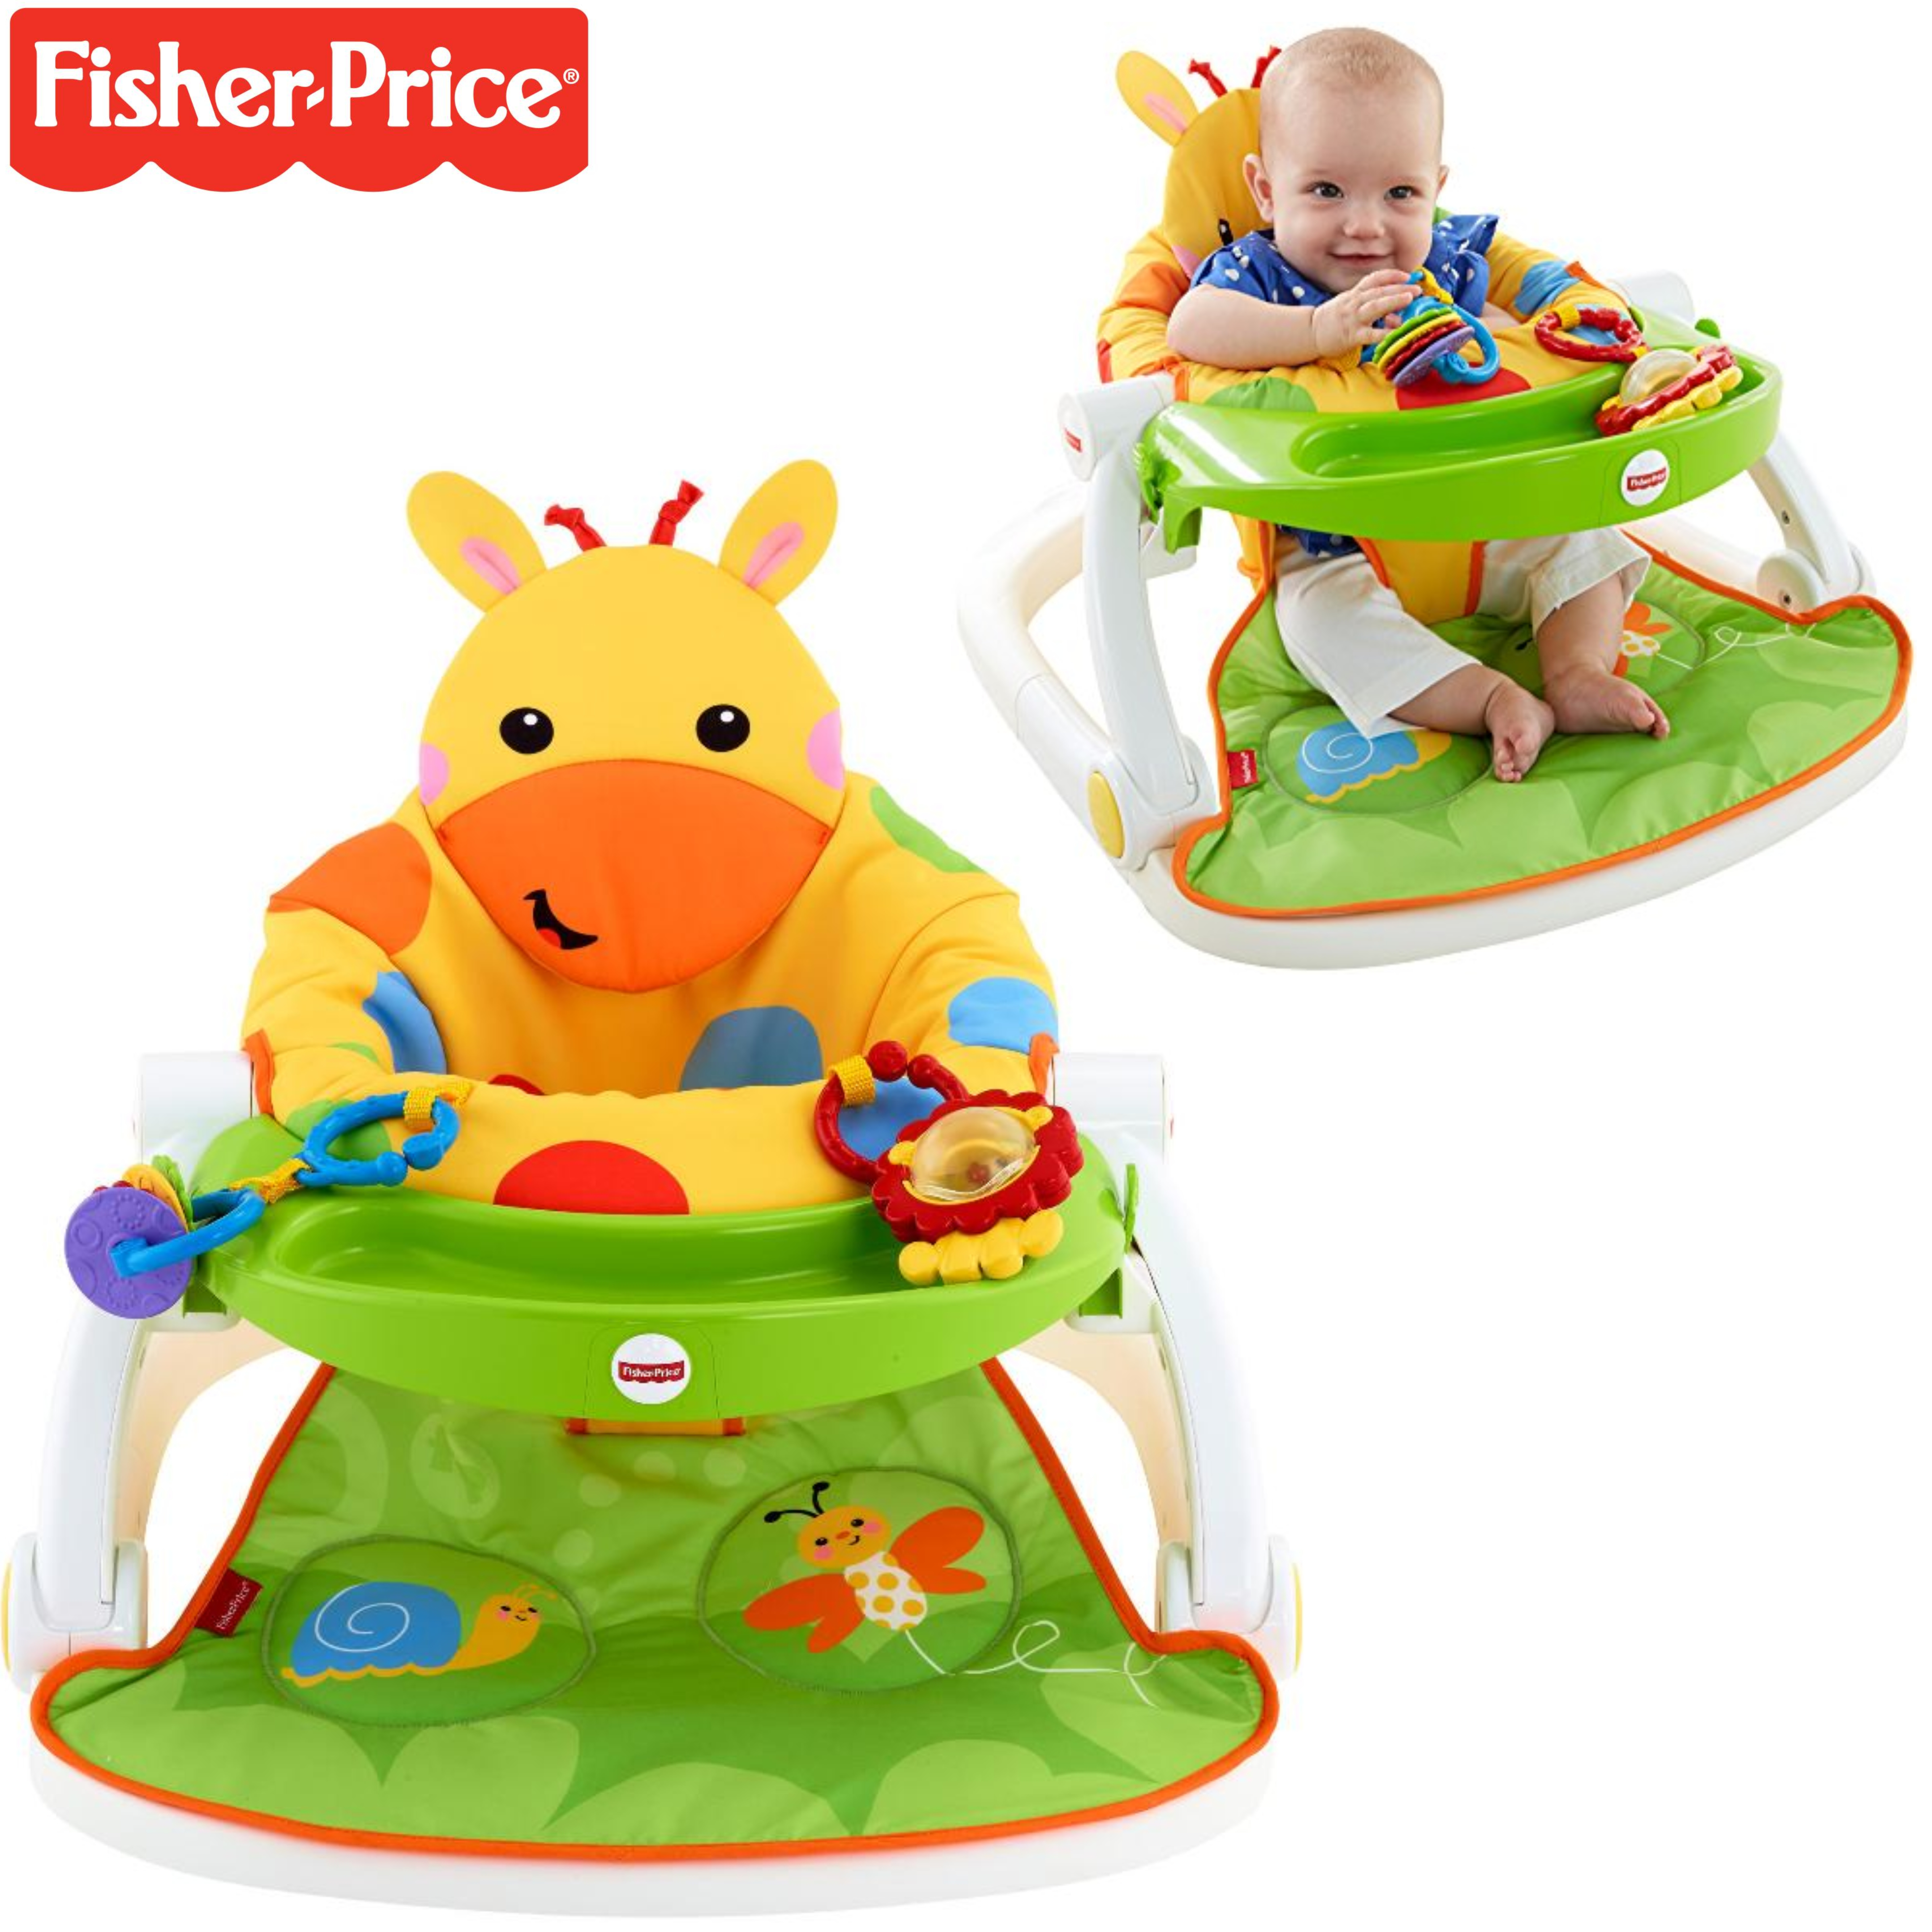 Fisher-Price Giraffe Sit Me Up Floor Seat|Kid's Snack Time Chair Toy|Soft Fabric